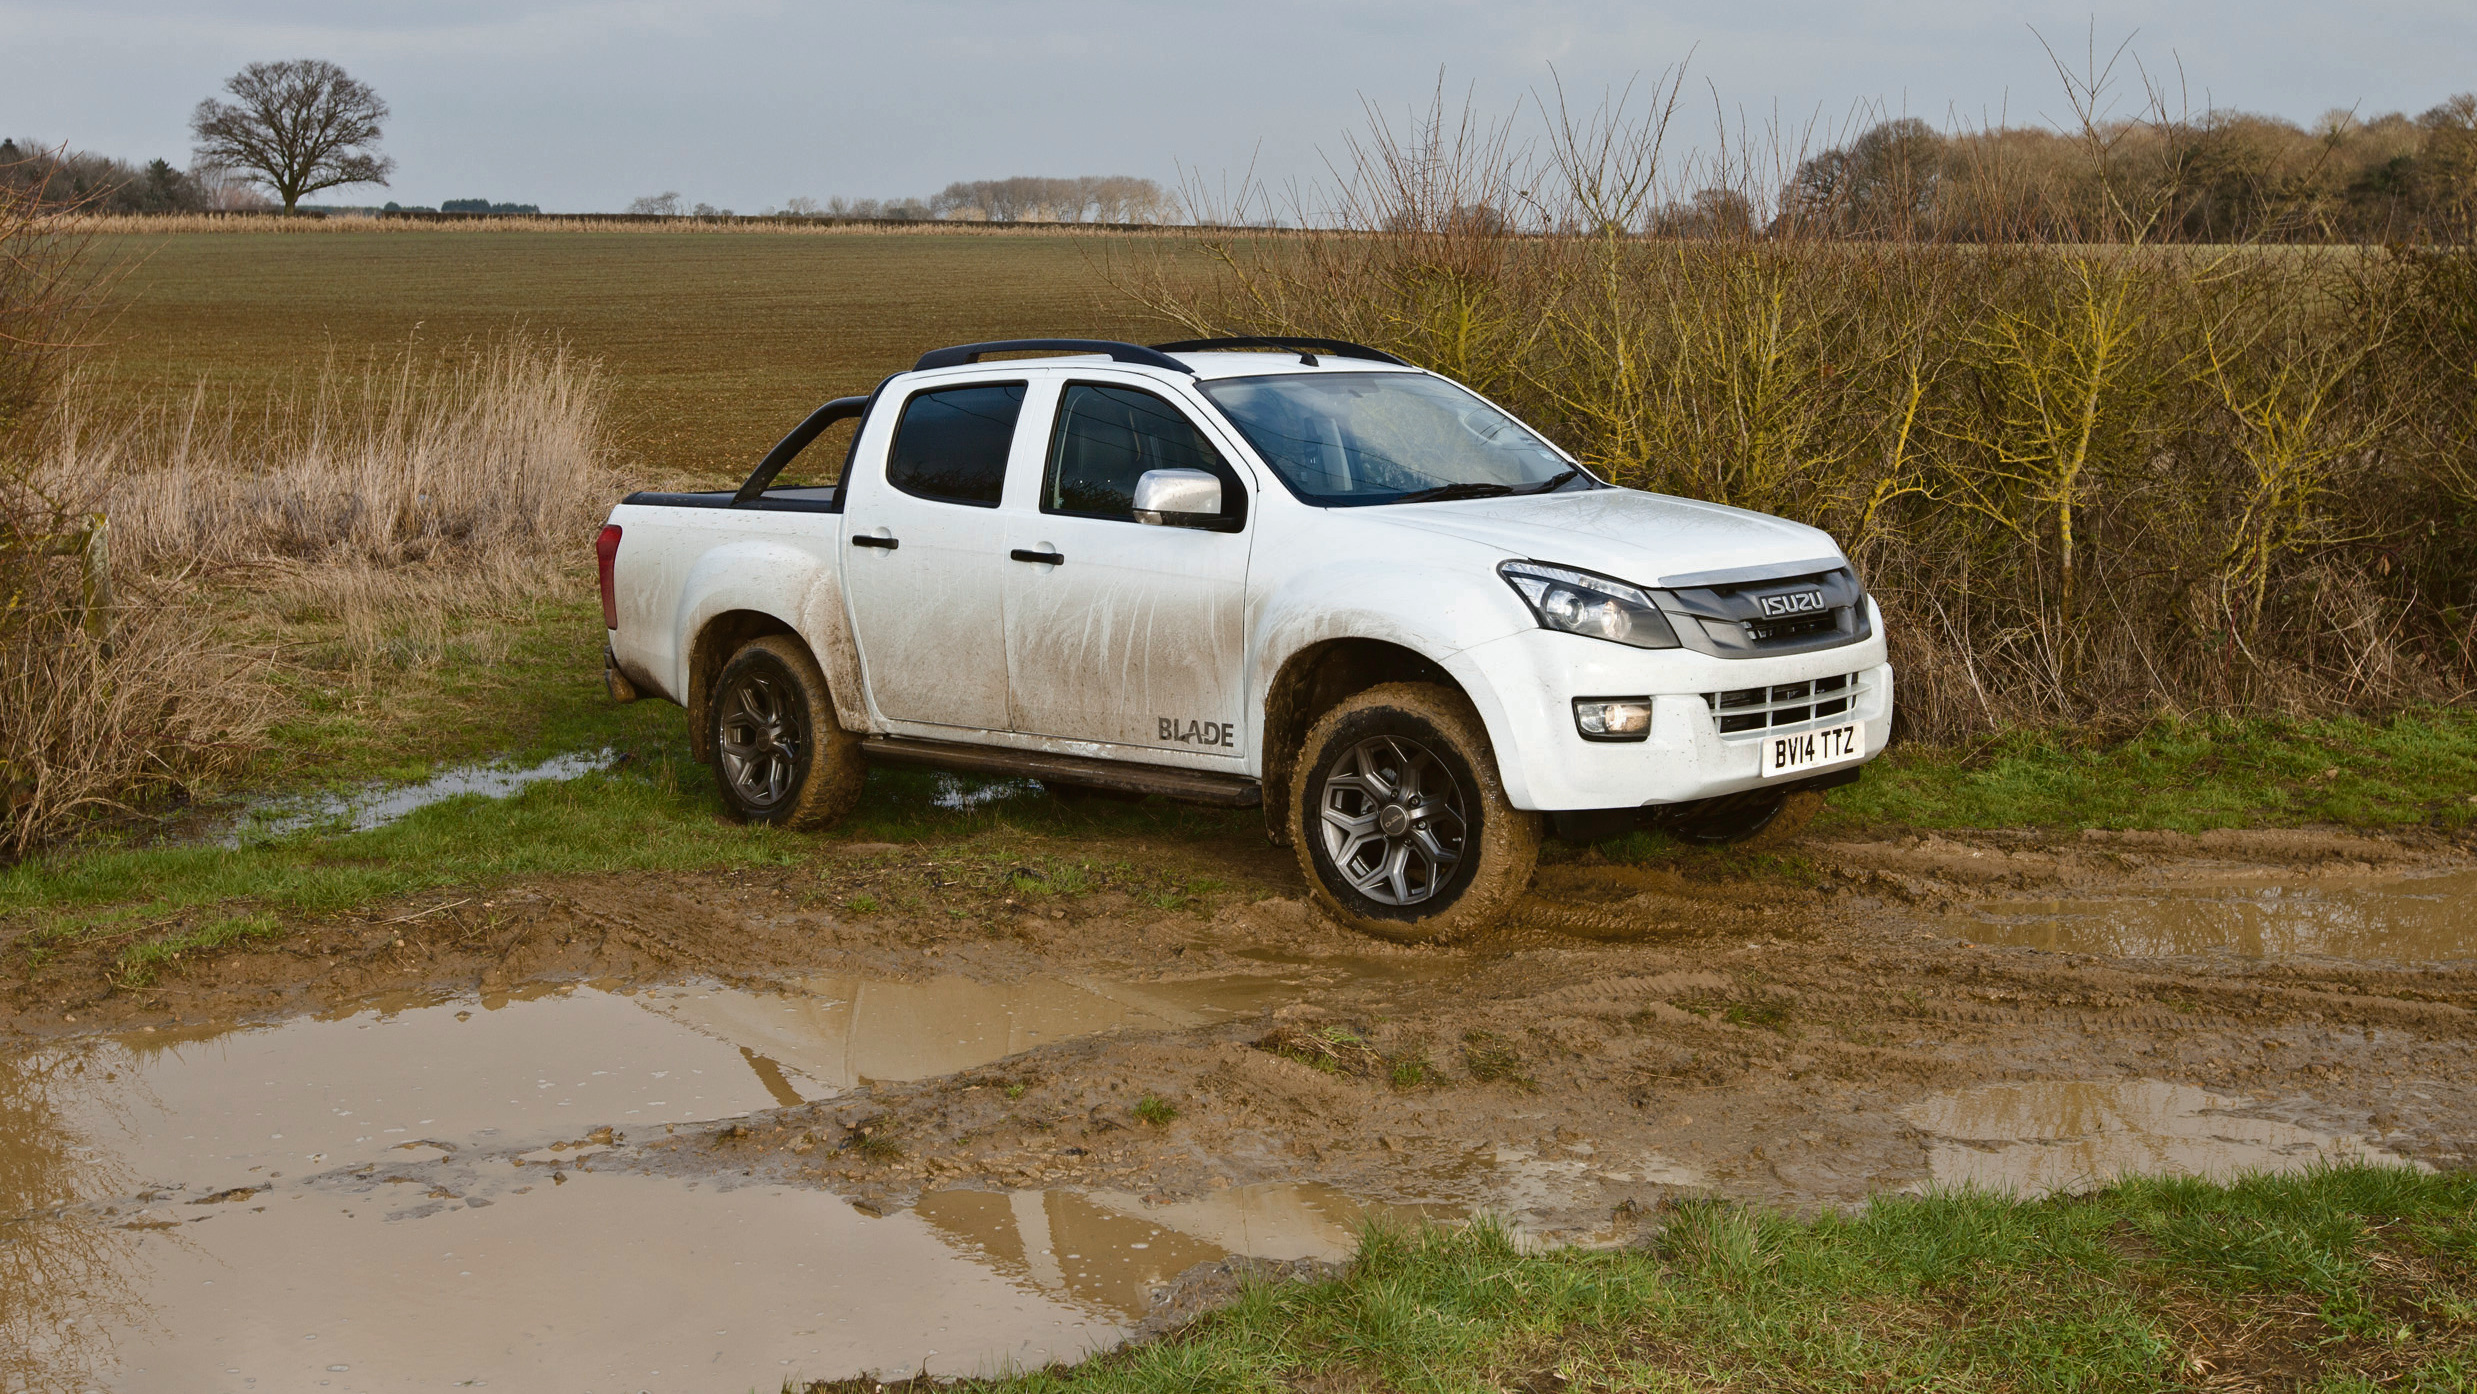 Isuzu D-Max Blade cuts out some substance in favour of style